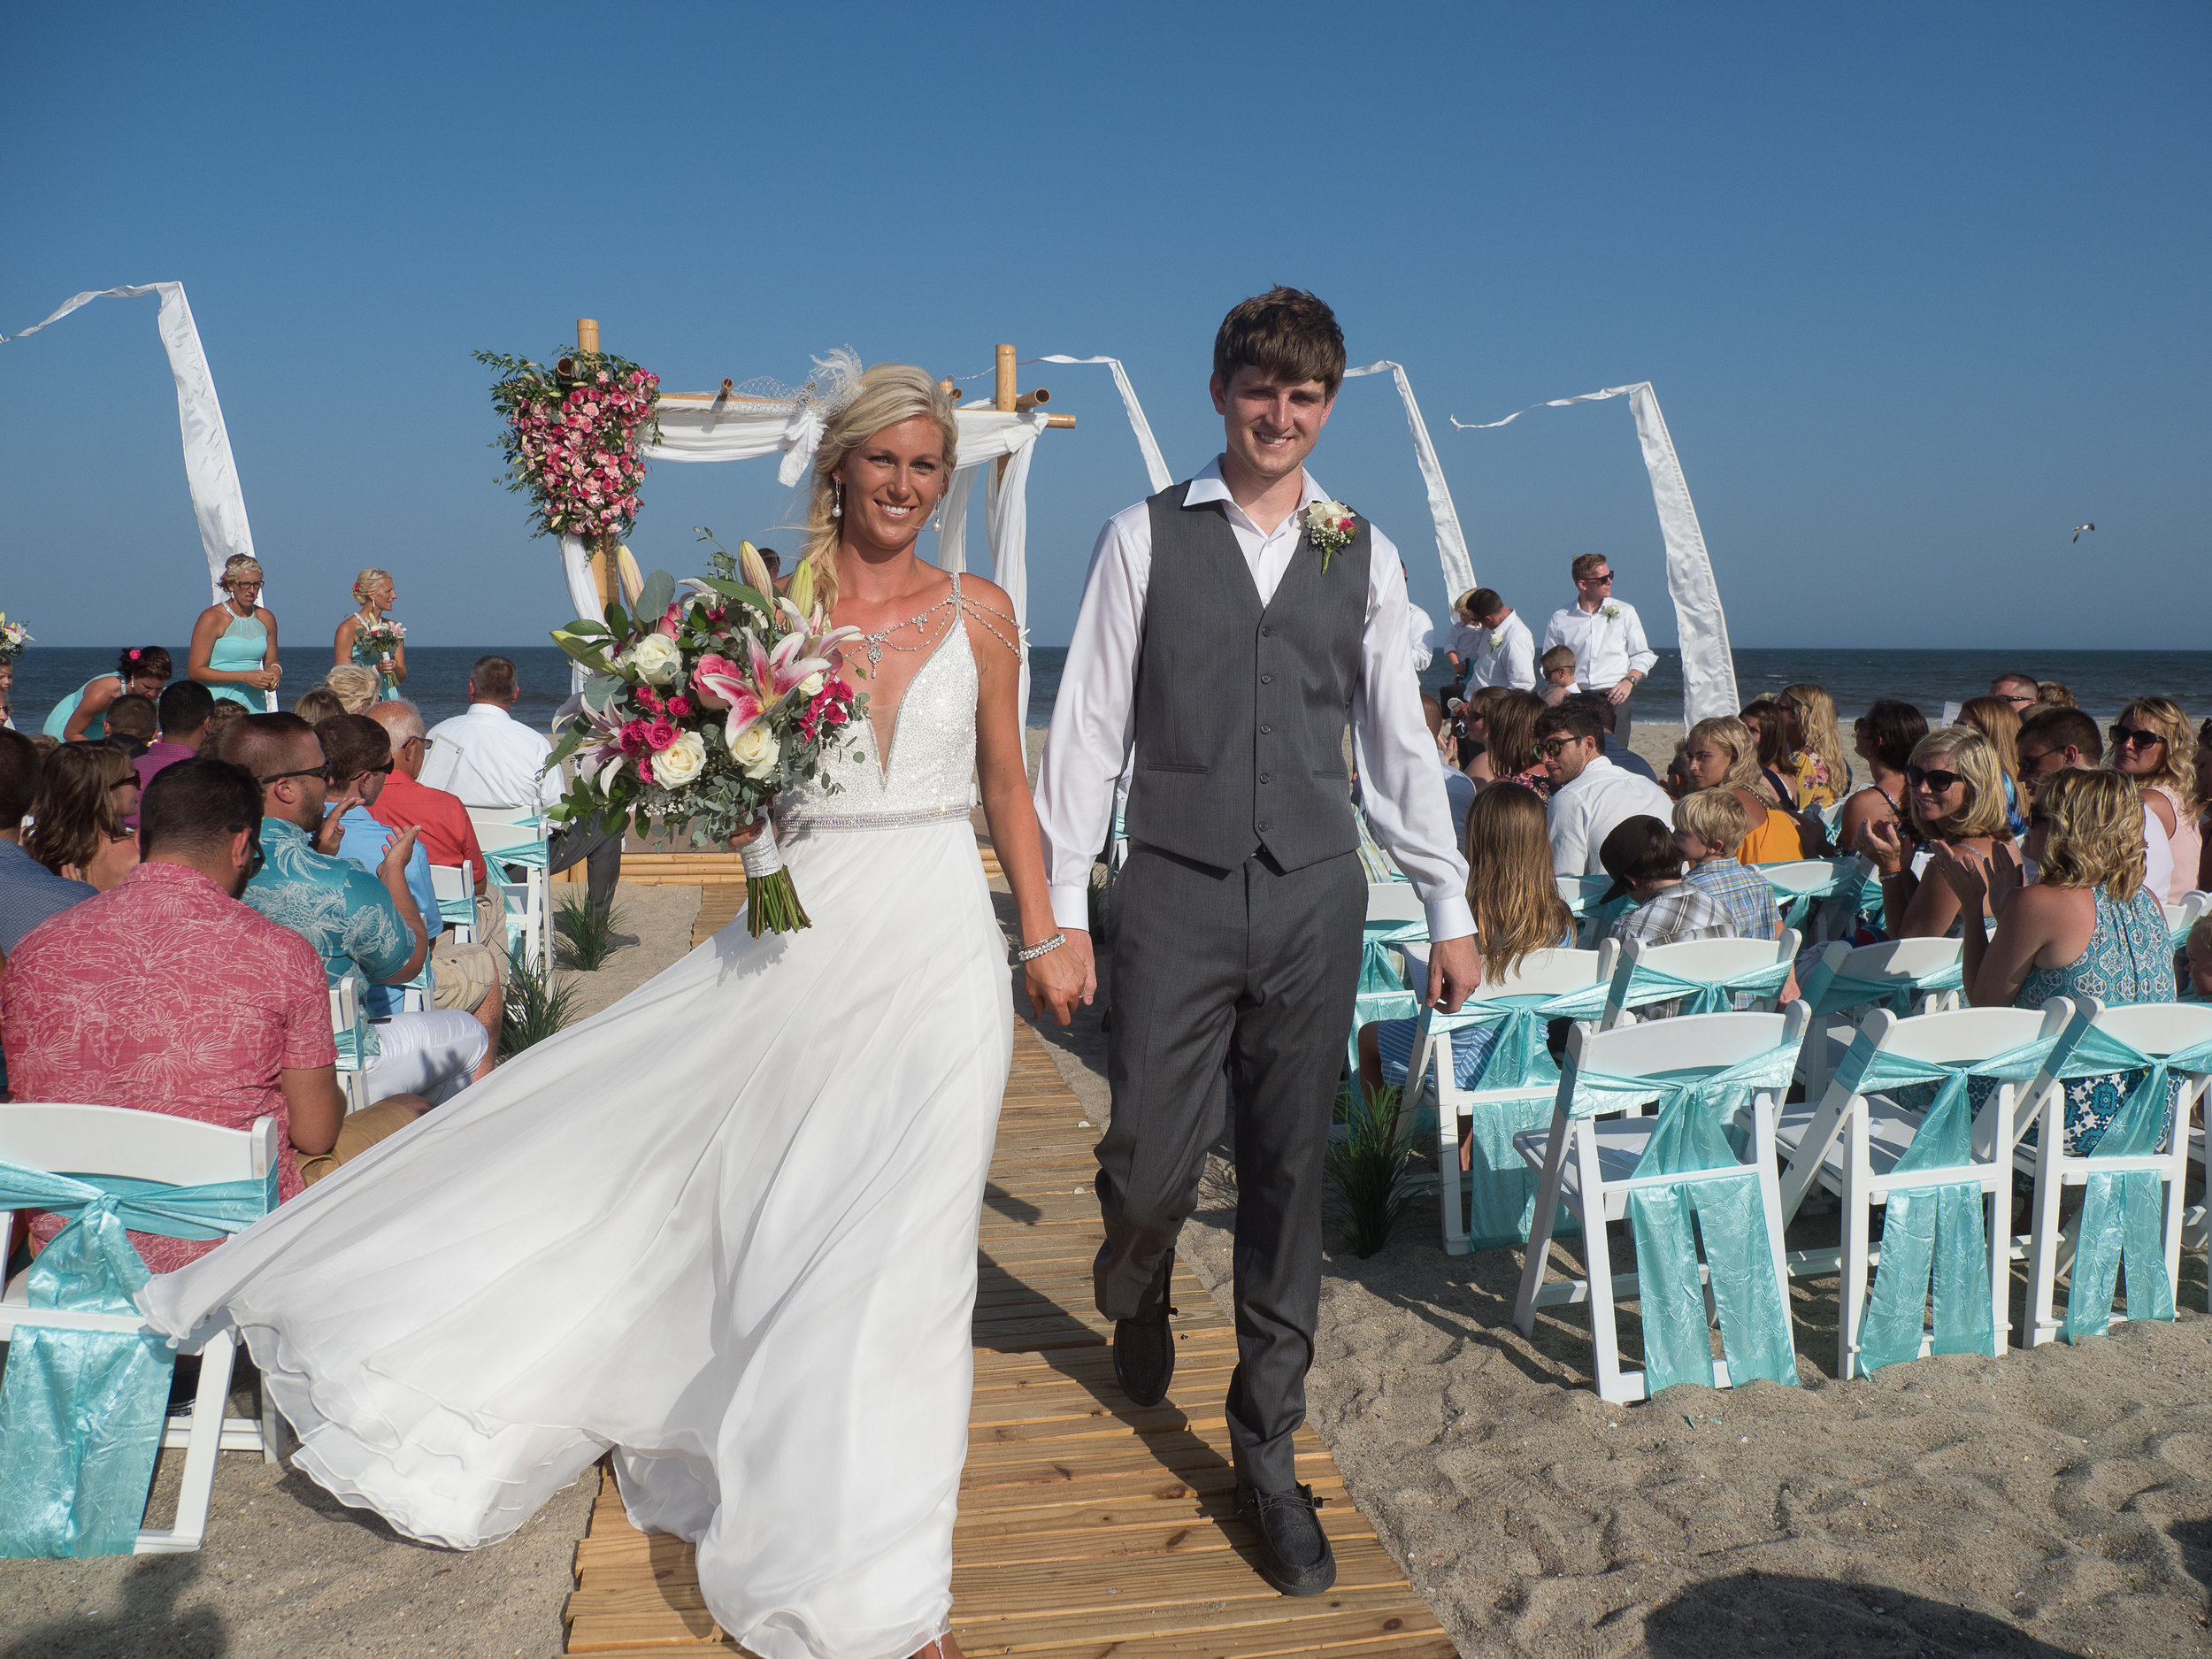 - Bride and groom walking up the aisle after being pronounced